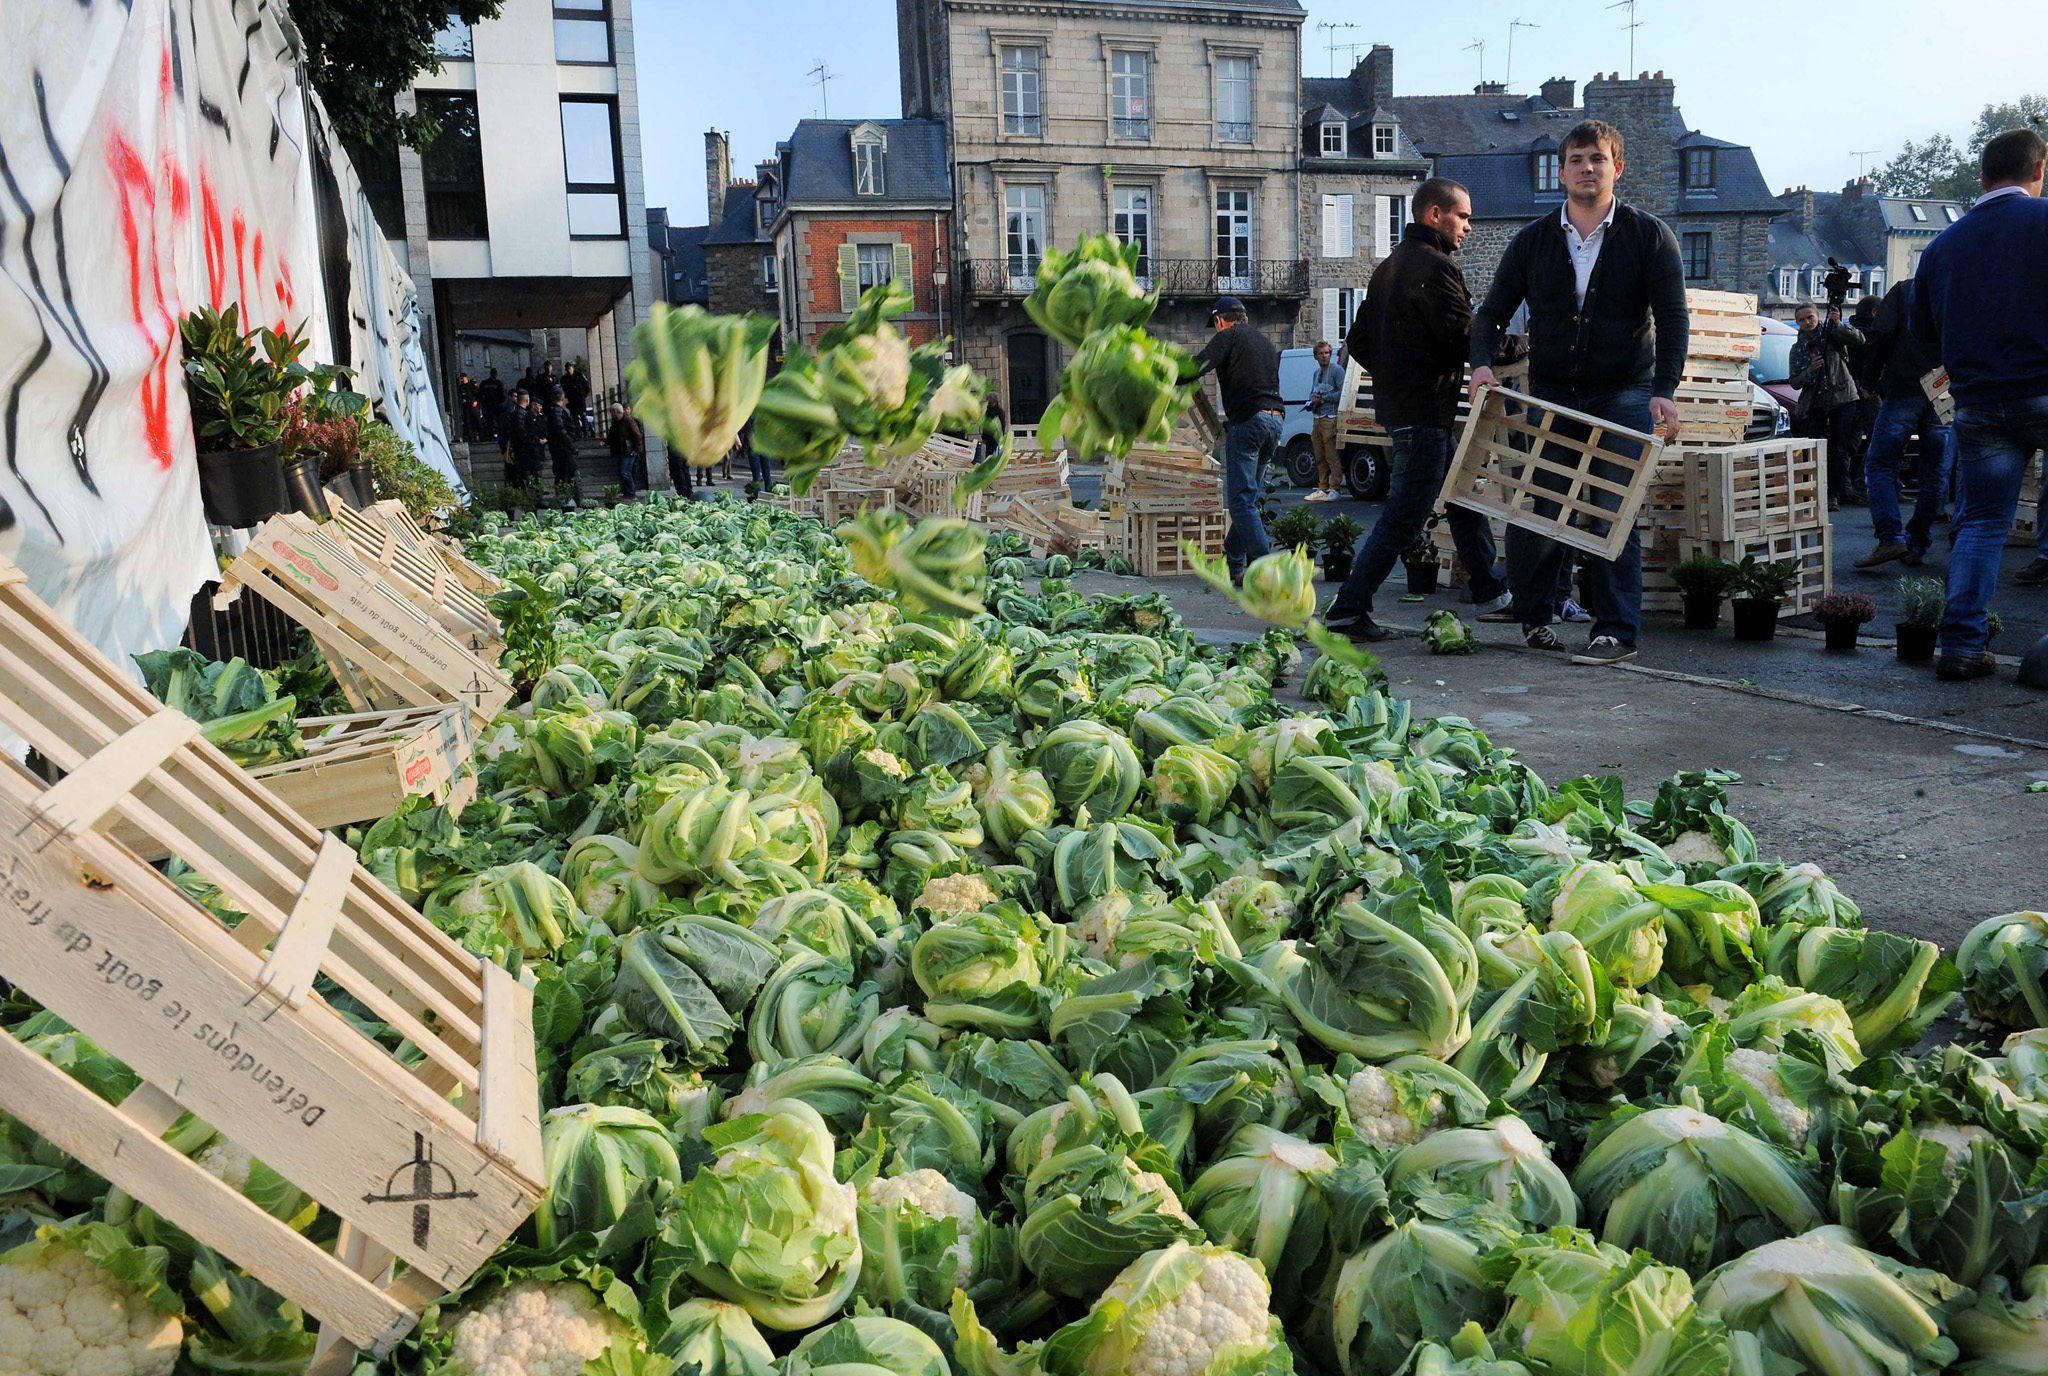 Angry farmers dump cauliflowers in front of the prefecture building of Saint-Brieuc, northwestern France, as riot policemen onwatch, on September 24, 2014, as part of a protest against falling prices and revenues, as the vegetable sector is being hit by a drop in prices, and by a Russian embargo on Western products due to the crisis in Ukraine.  AFP PHOTO / FRED TANNEAU